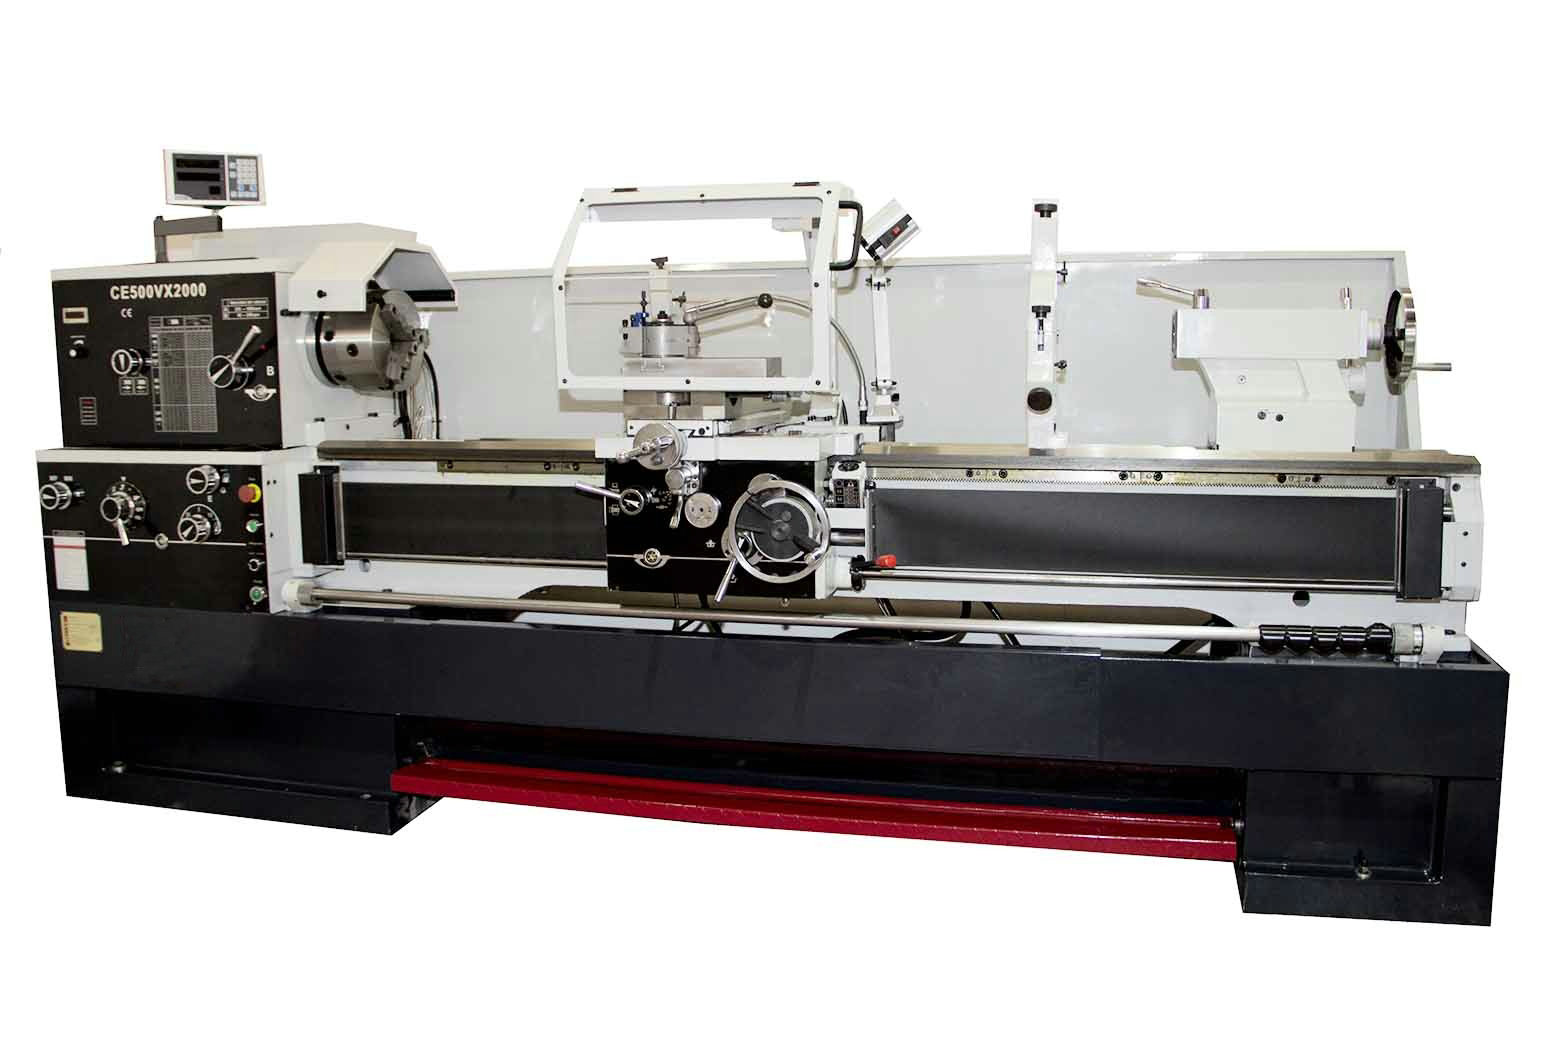 VARIABLE SPEED PARALLEL LATHE CE460X1500